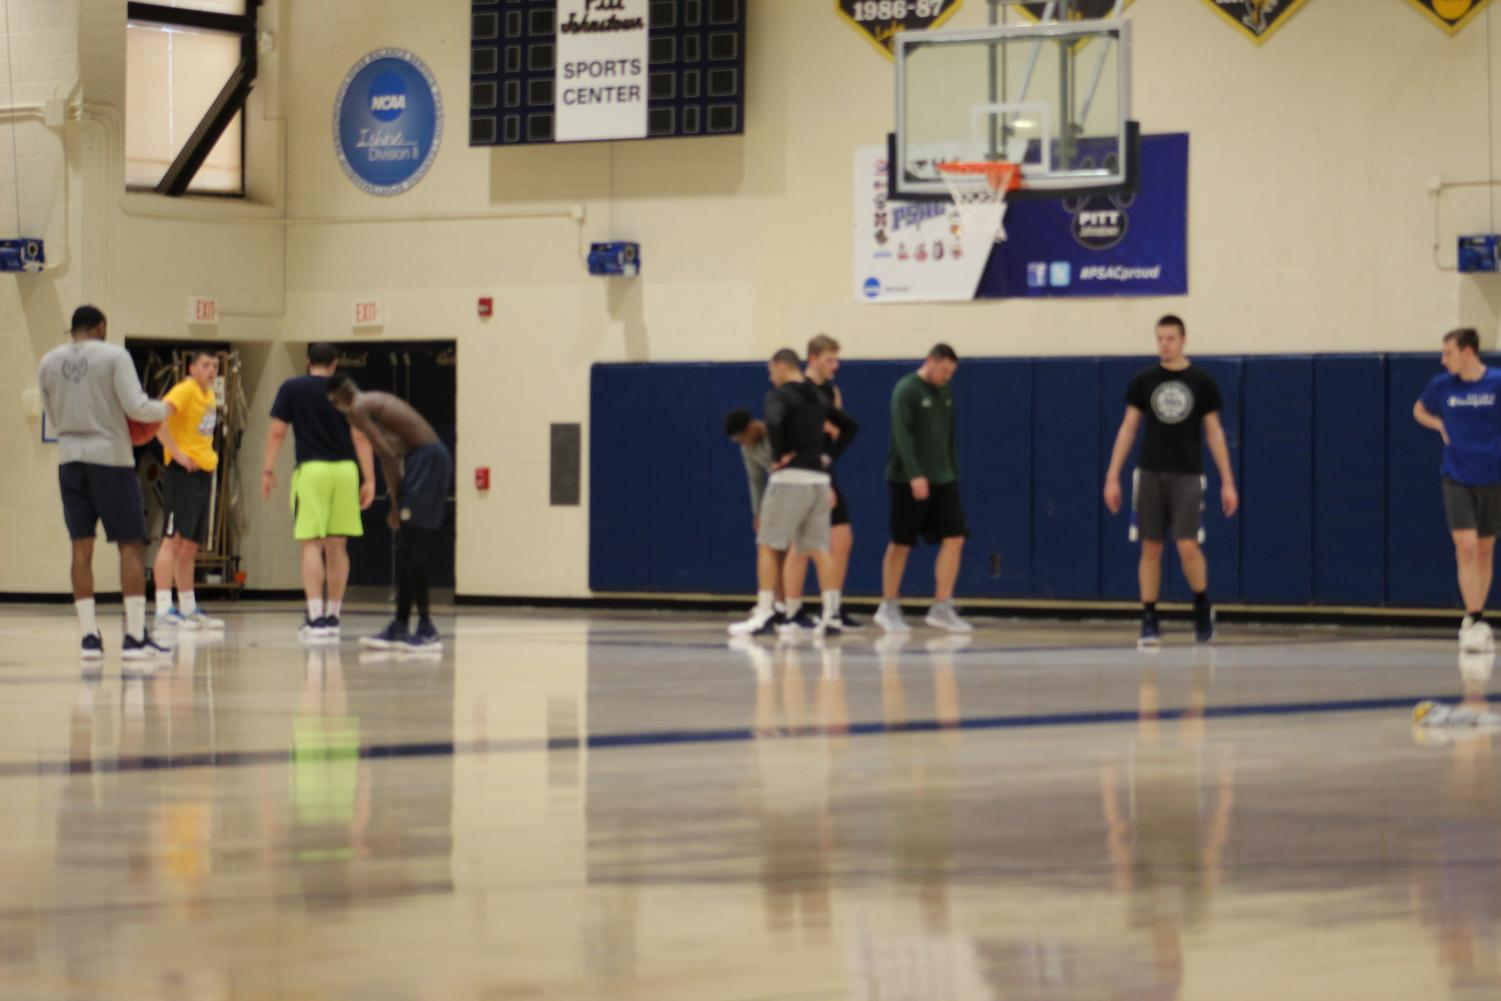 Women's head coach Mike Drahos second from right helps the men's basketball team for their pick-up game in the Sports Center March 20.